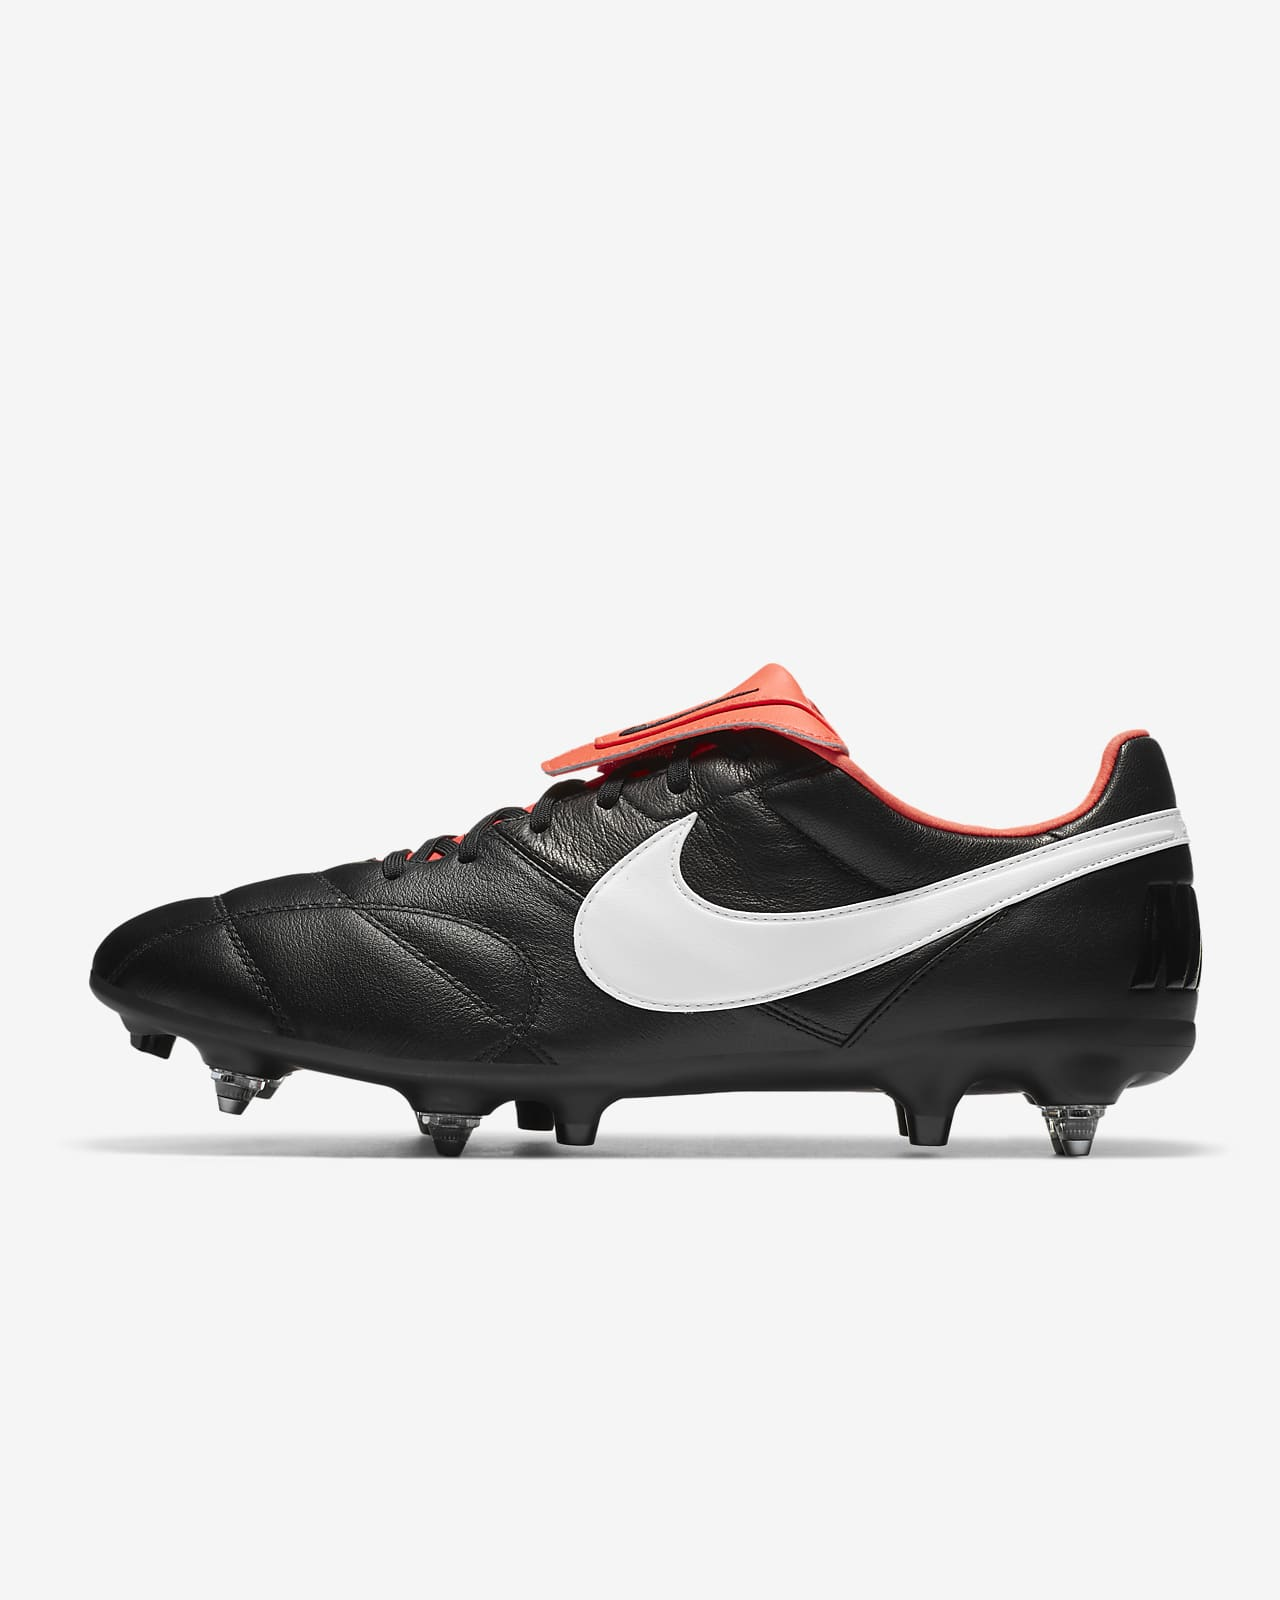 Nike Premier 2 SG-Pro AC Soft-Ground Football Boot